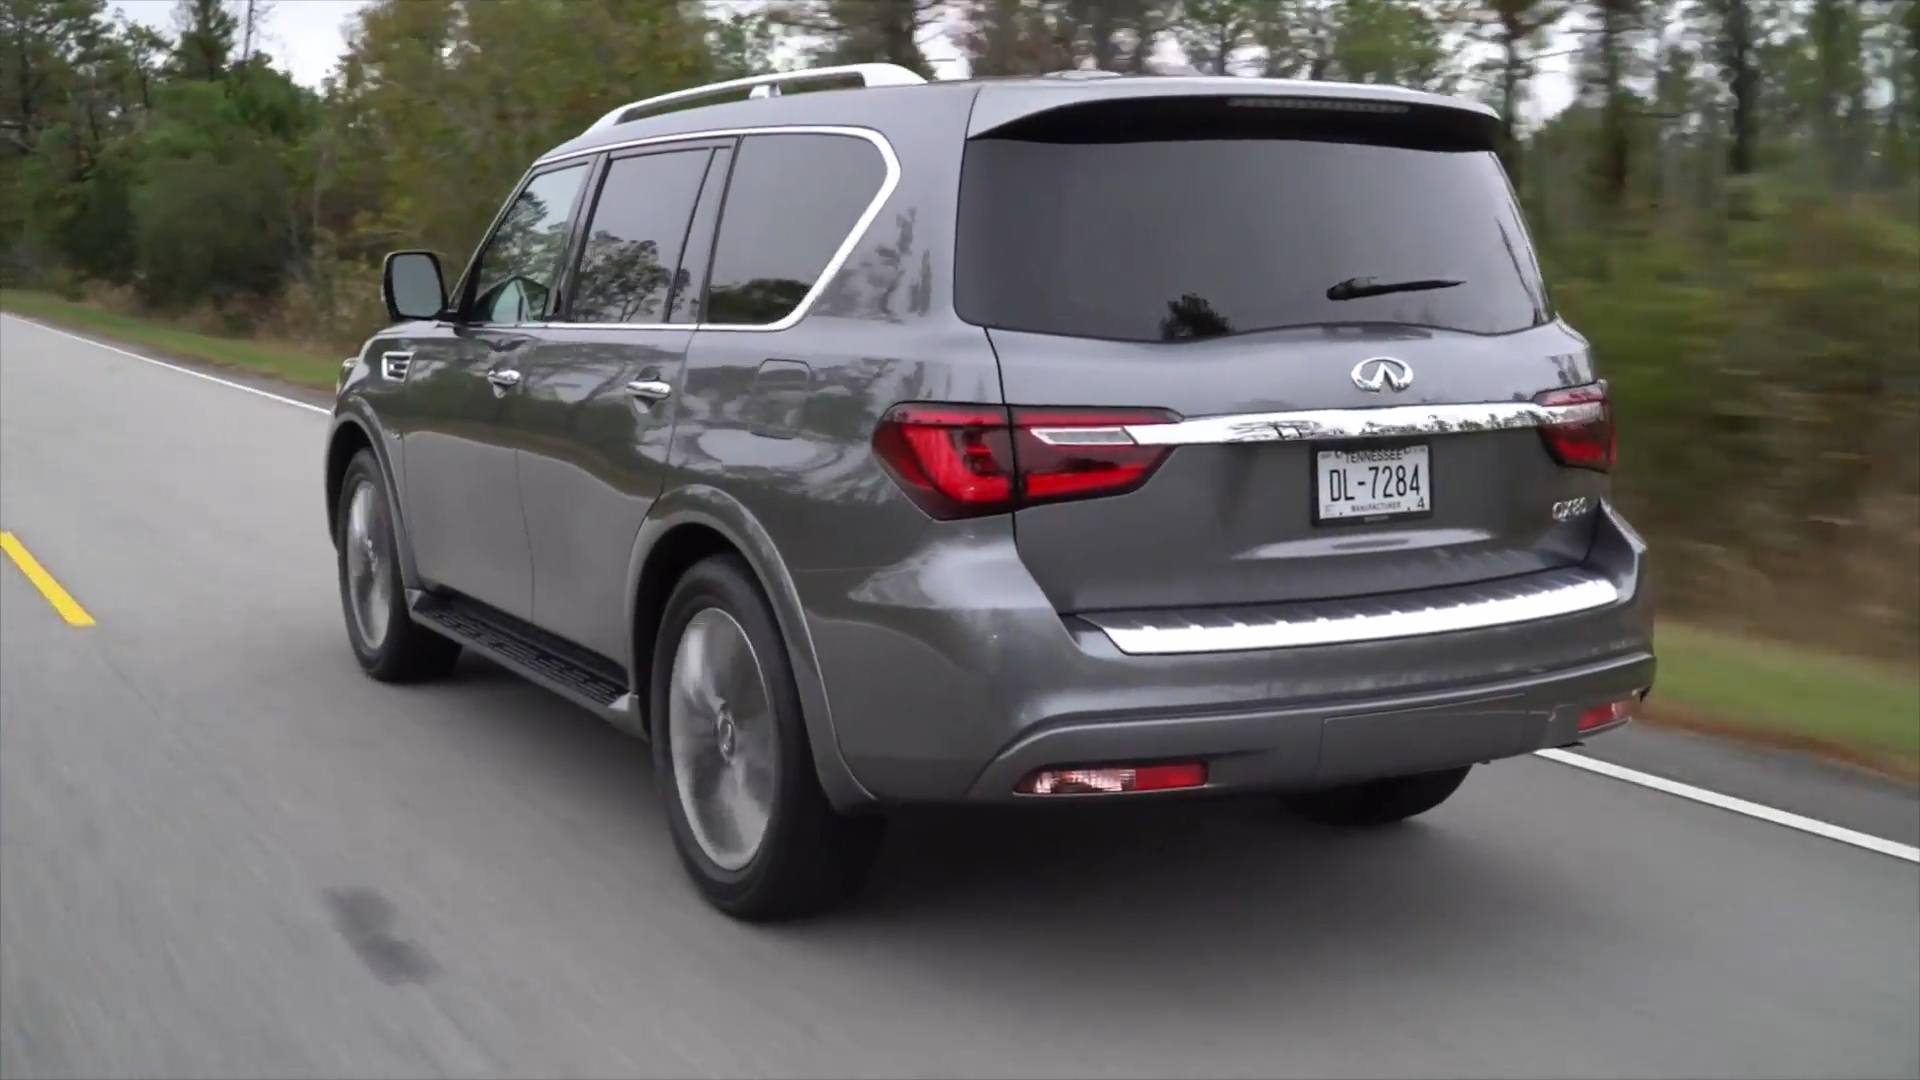 2018 INFINITI QX80 in Graphite Shadow Driving Video